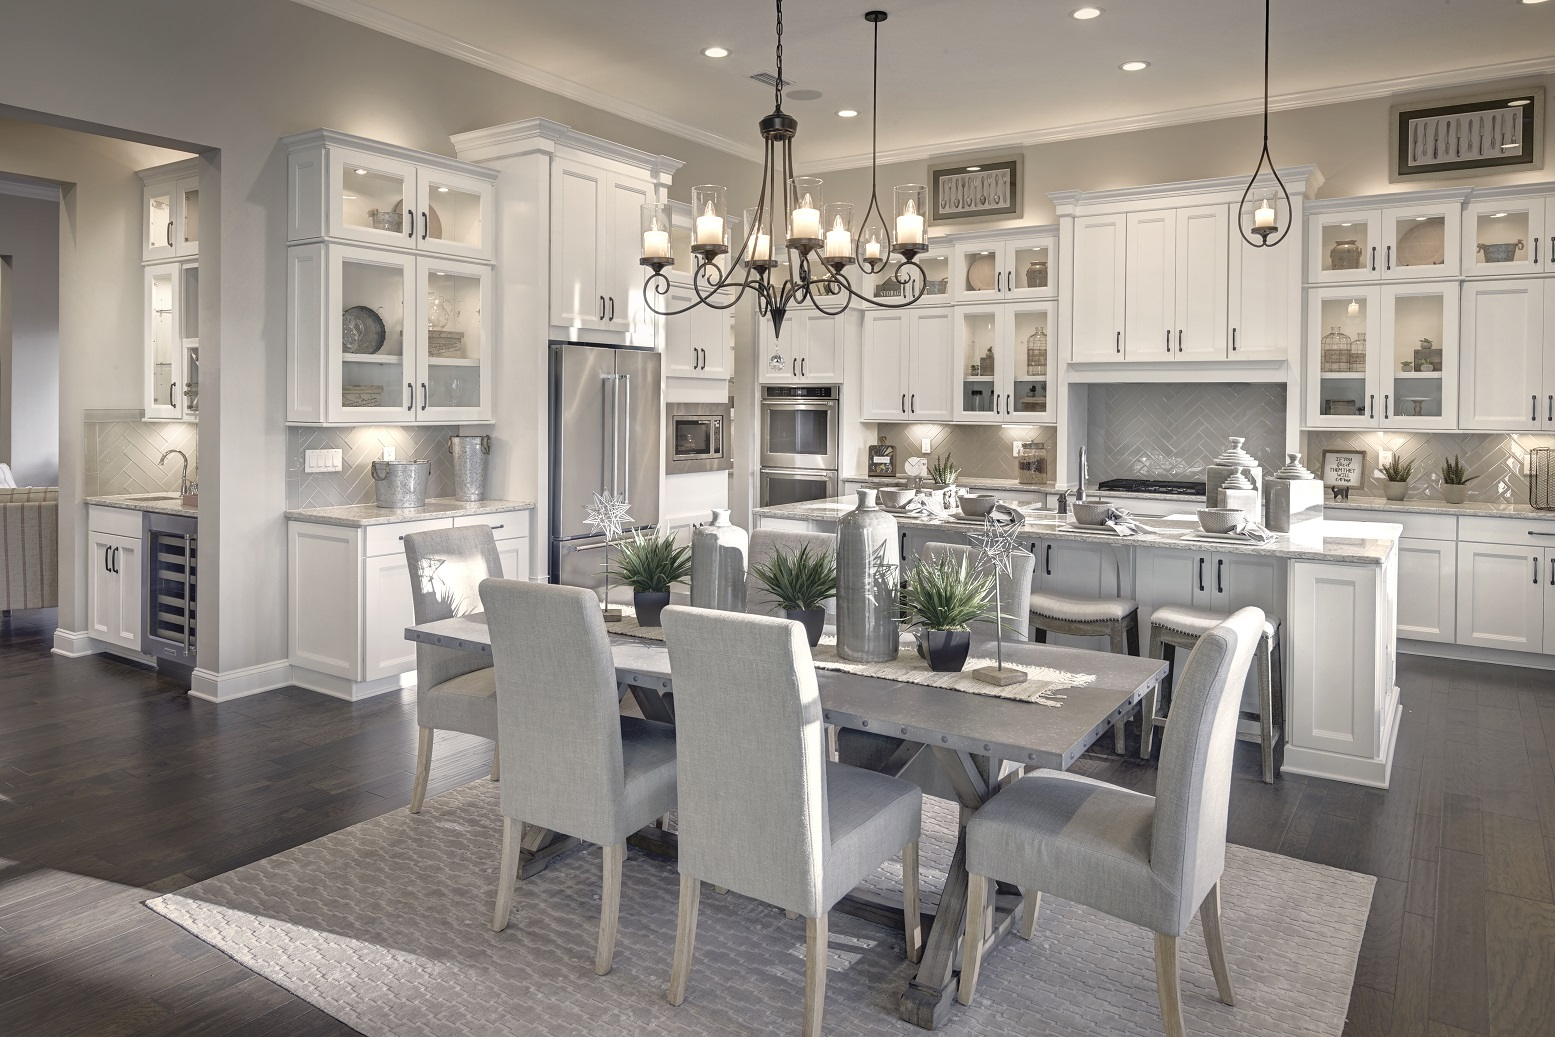 Mattamy homes rivertown opens six new decorated model homes - Who decorates model homes image ...